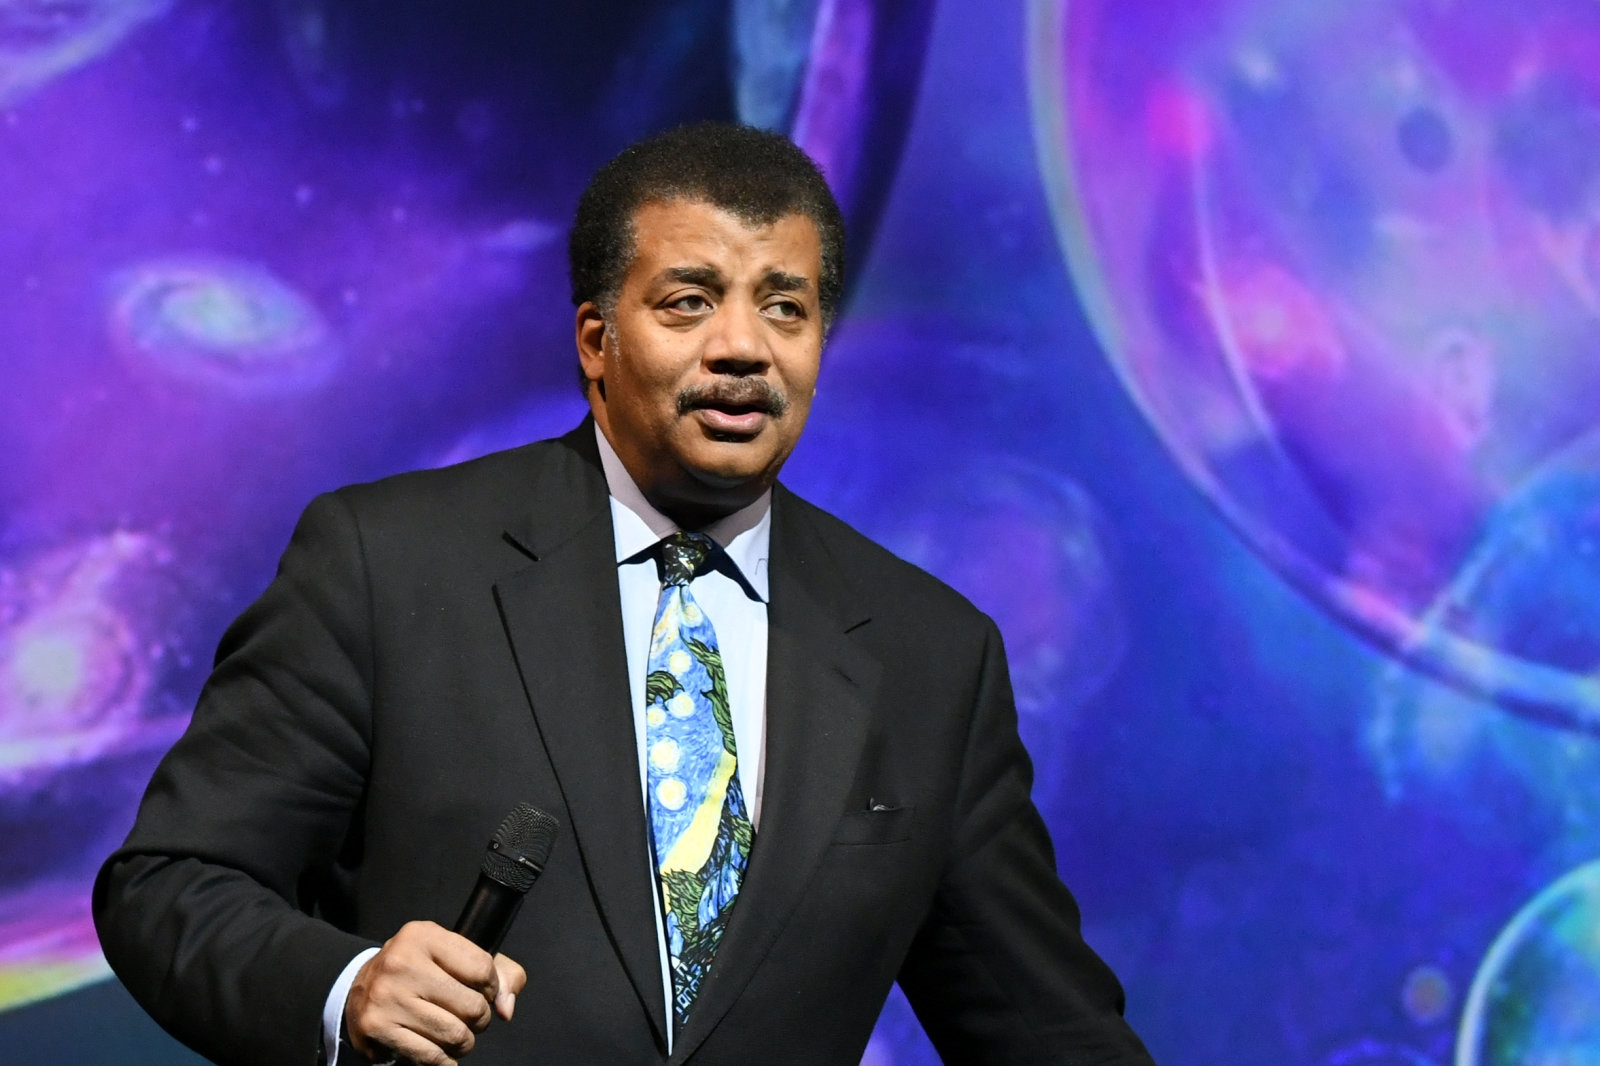 Neil deGrasse Tyson will continue with 'Cosmos' after investigation | DeviceDaily.com